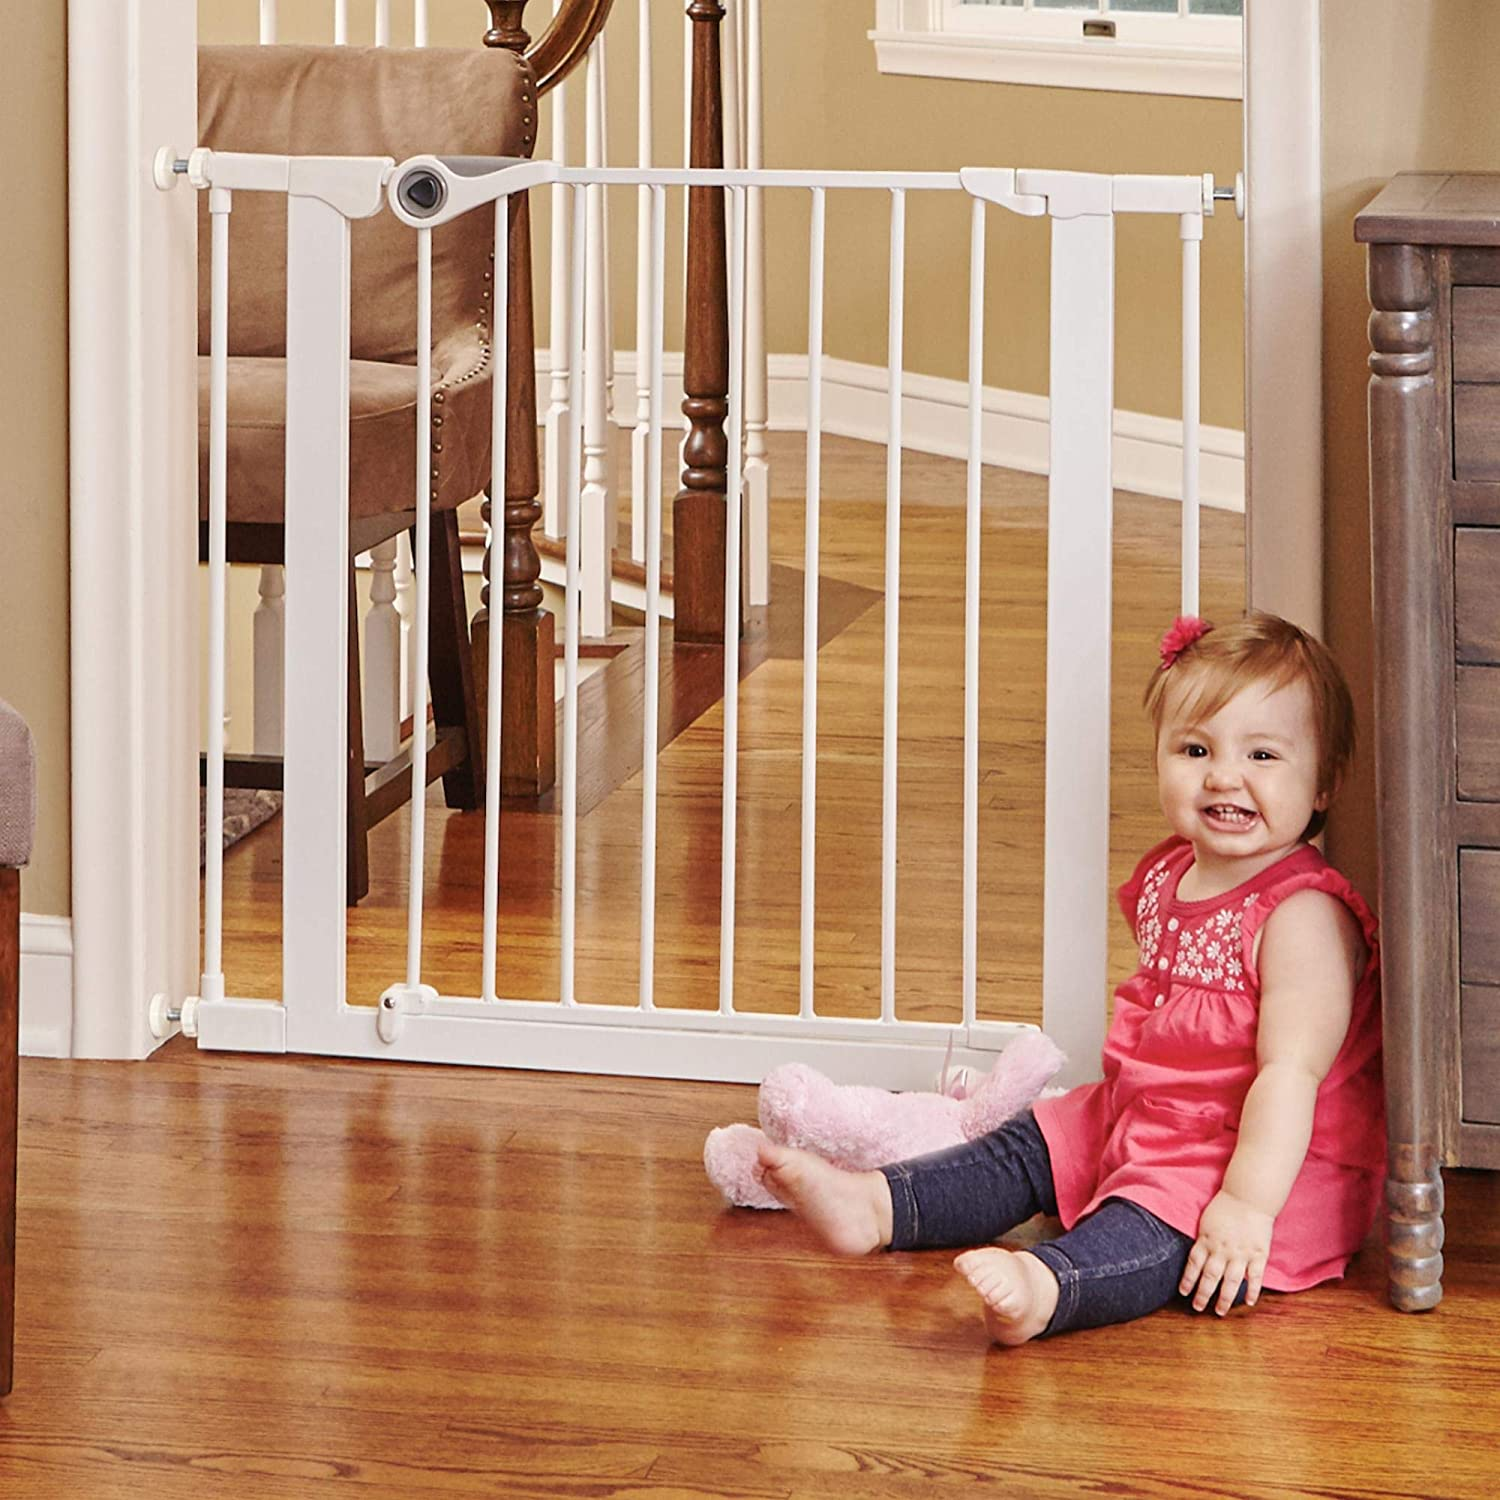 North States 38.1 Wide Essential Walk-Thru Gate Ideal for securing hallways or doorways. Extra-Wide Doorway. Pressure Mount. Fits 29.8 – 38.1 Wide 30 Tall, White